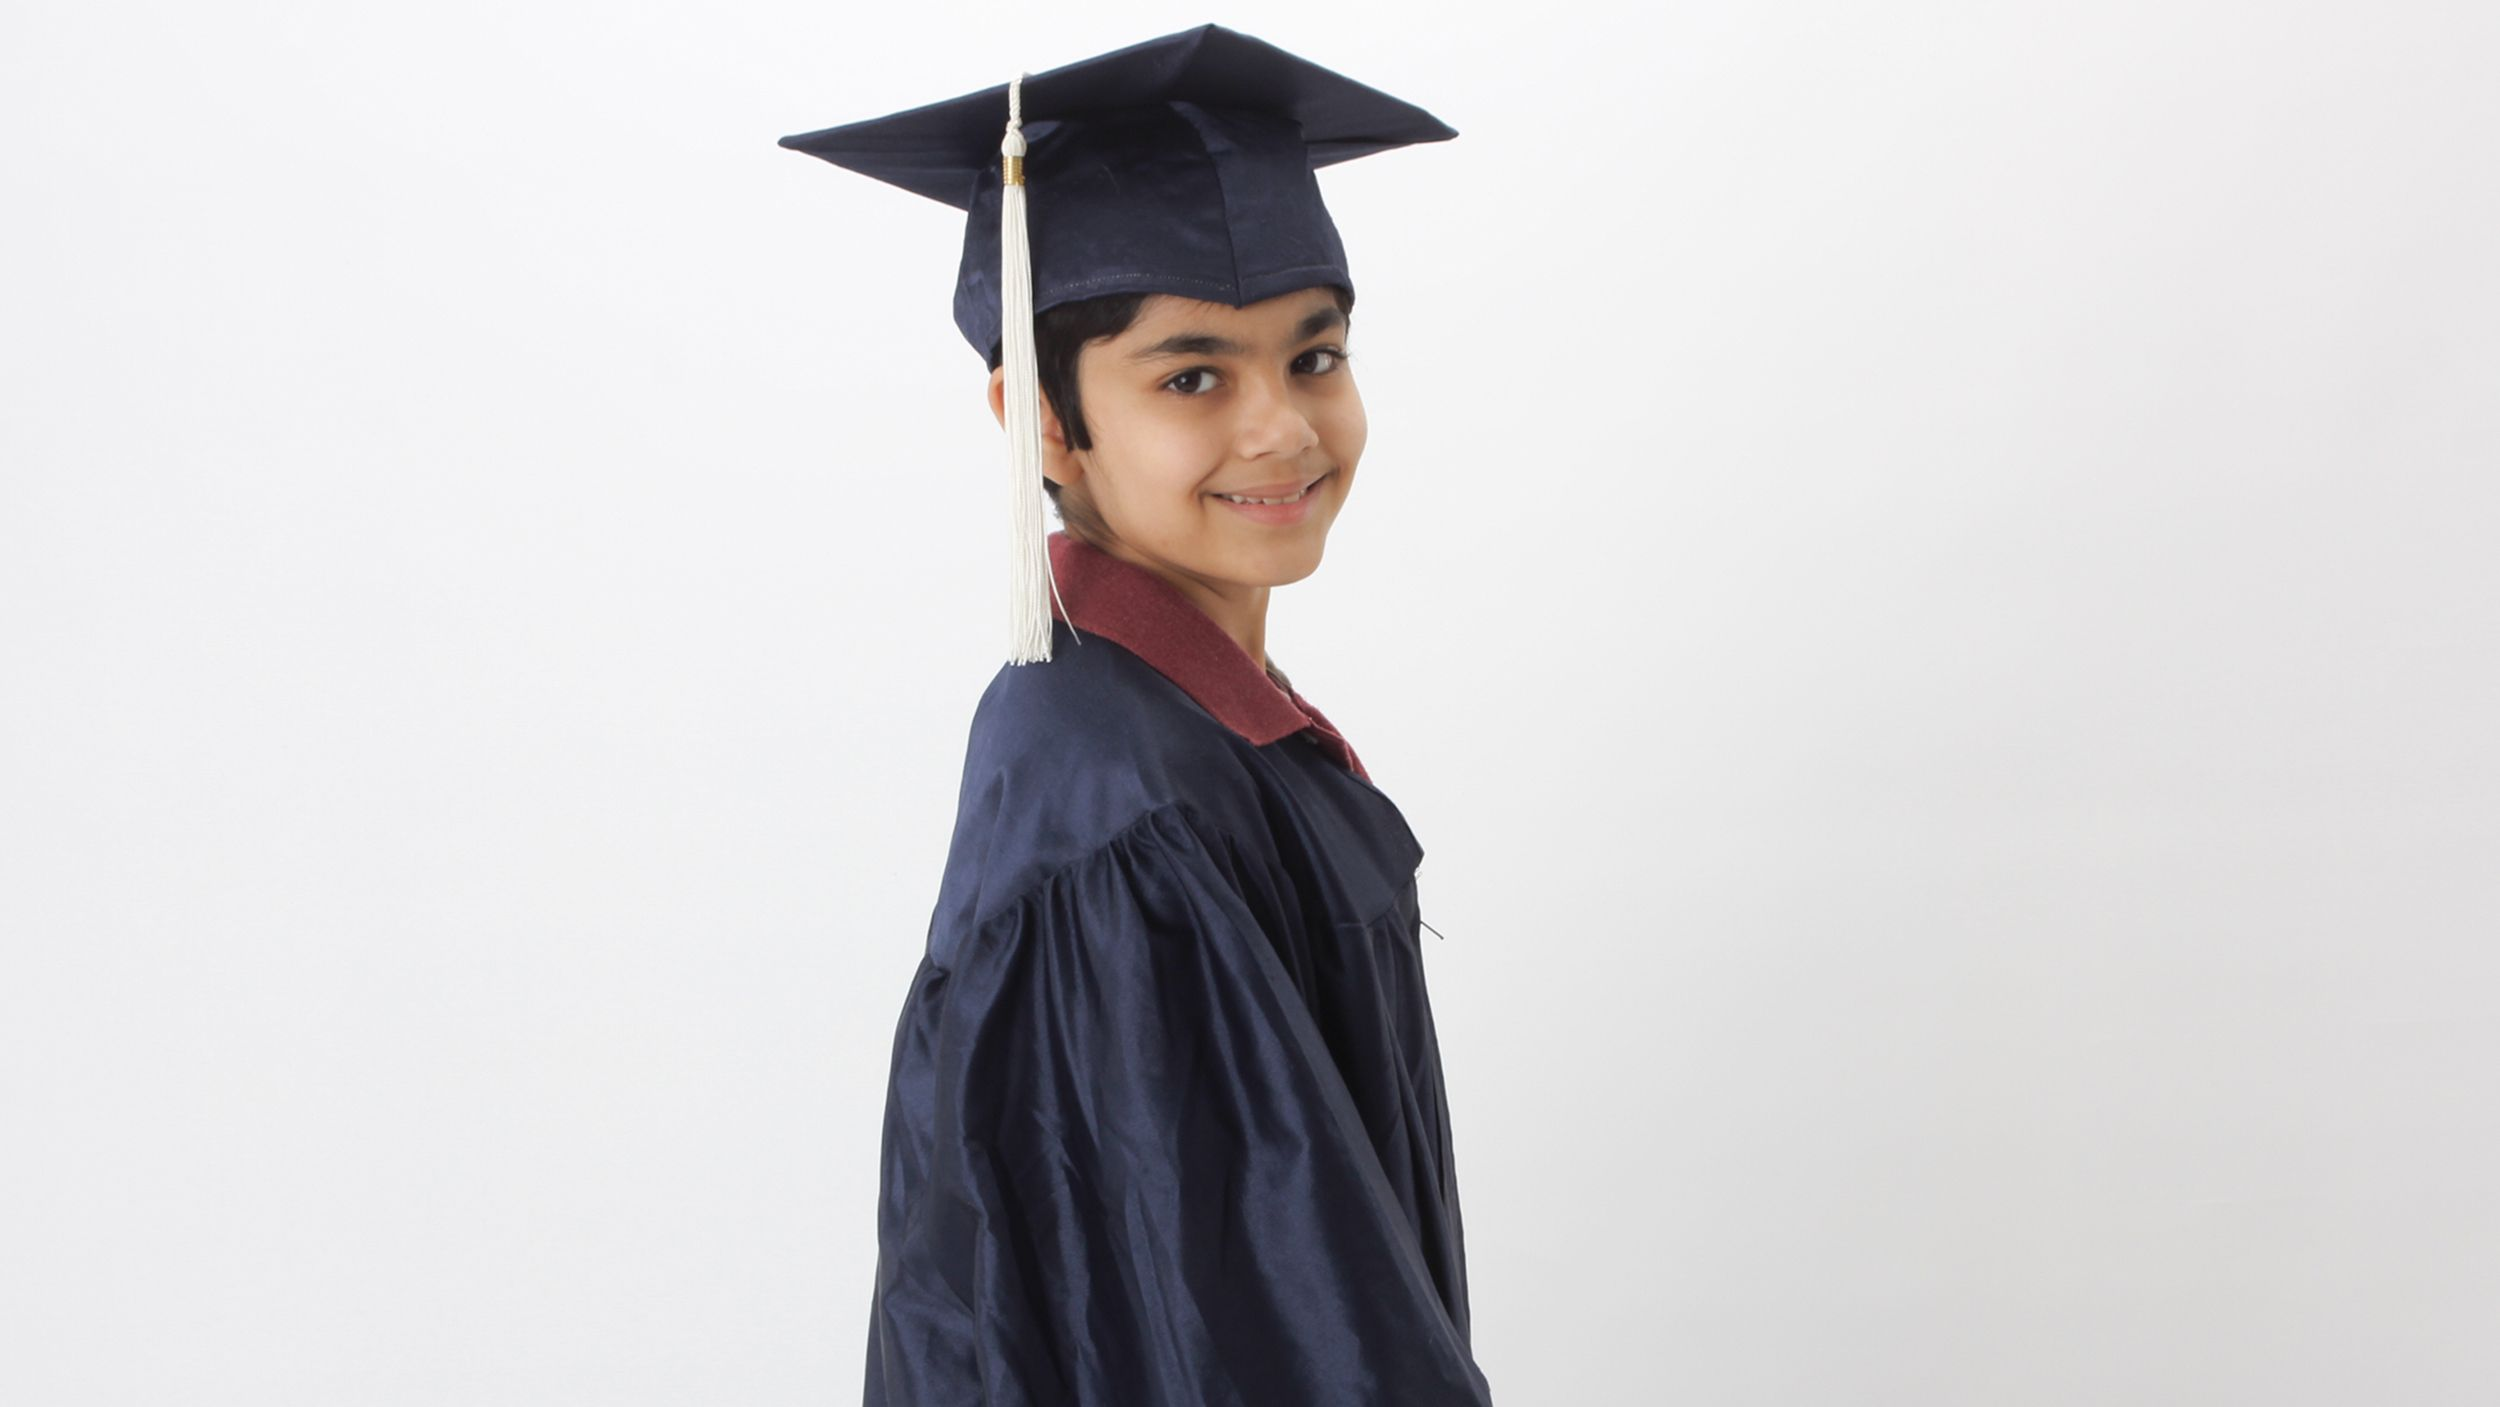 Meet The 10 Year Old Prodigy Who Just Graduated From High School High School 10 Year Old High School Graduation